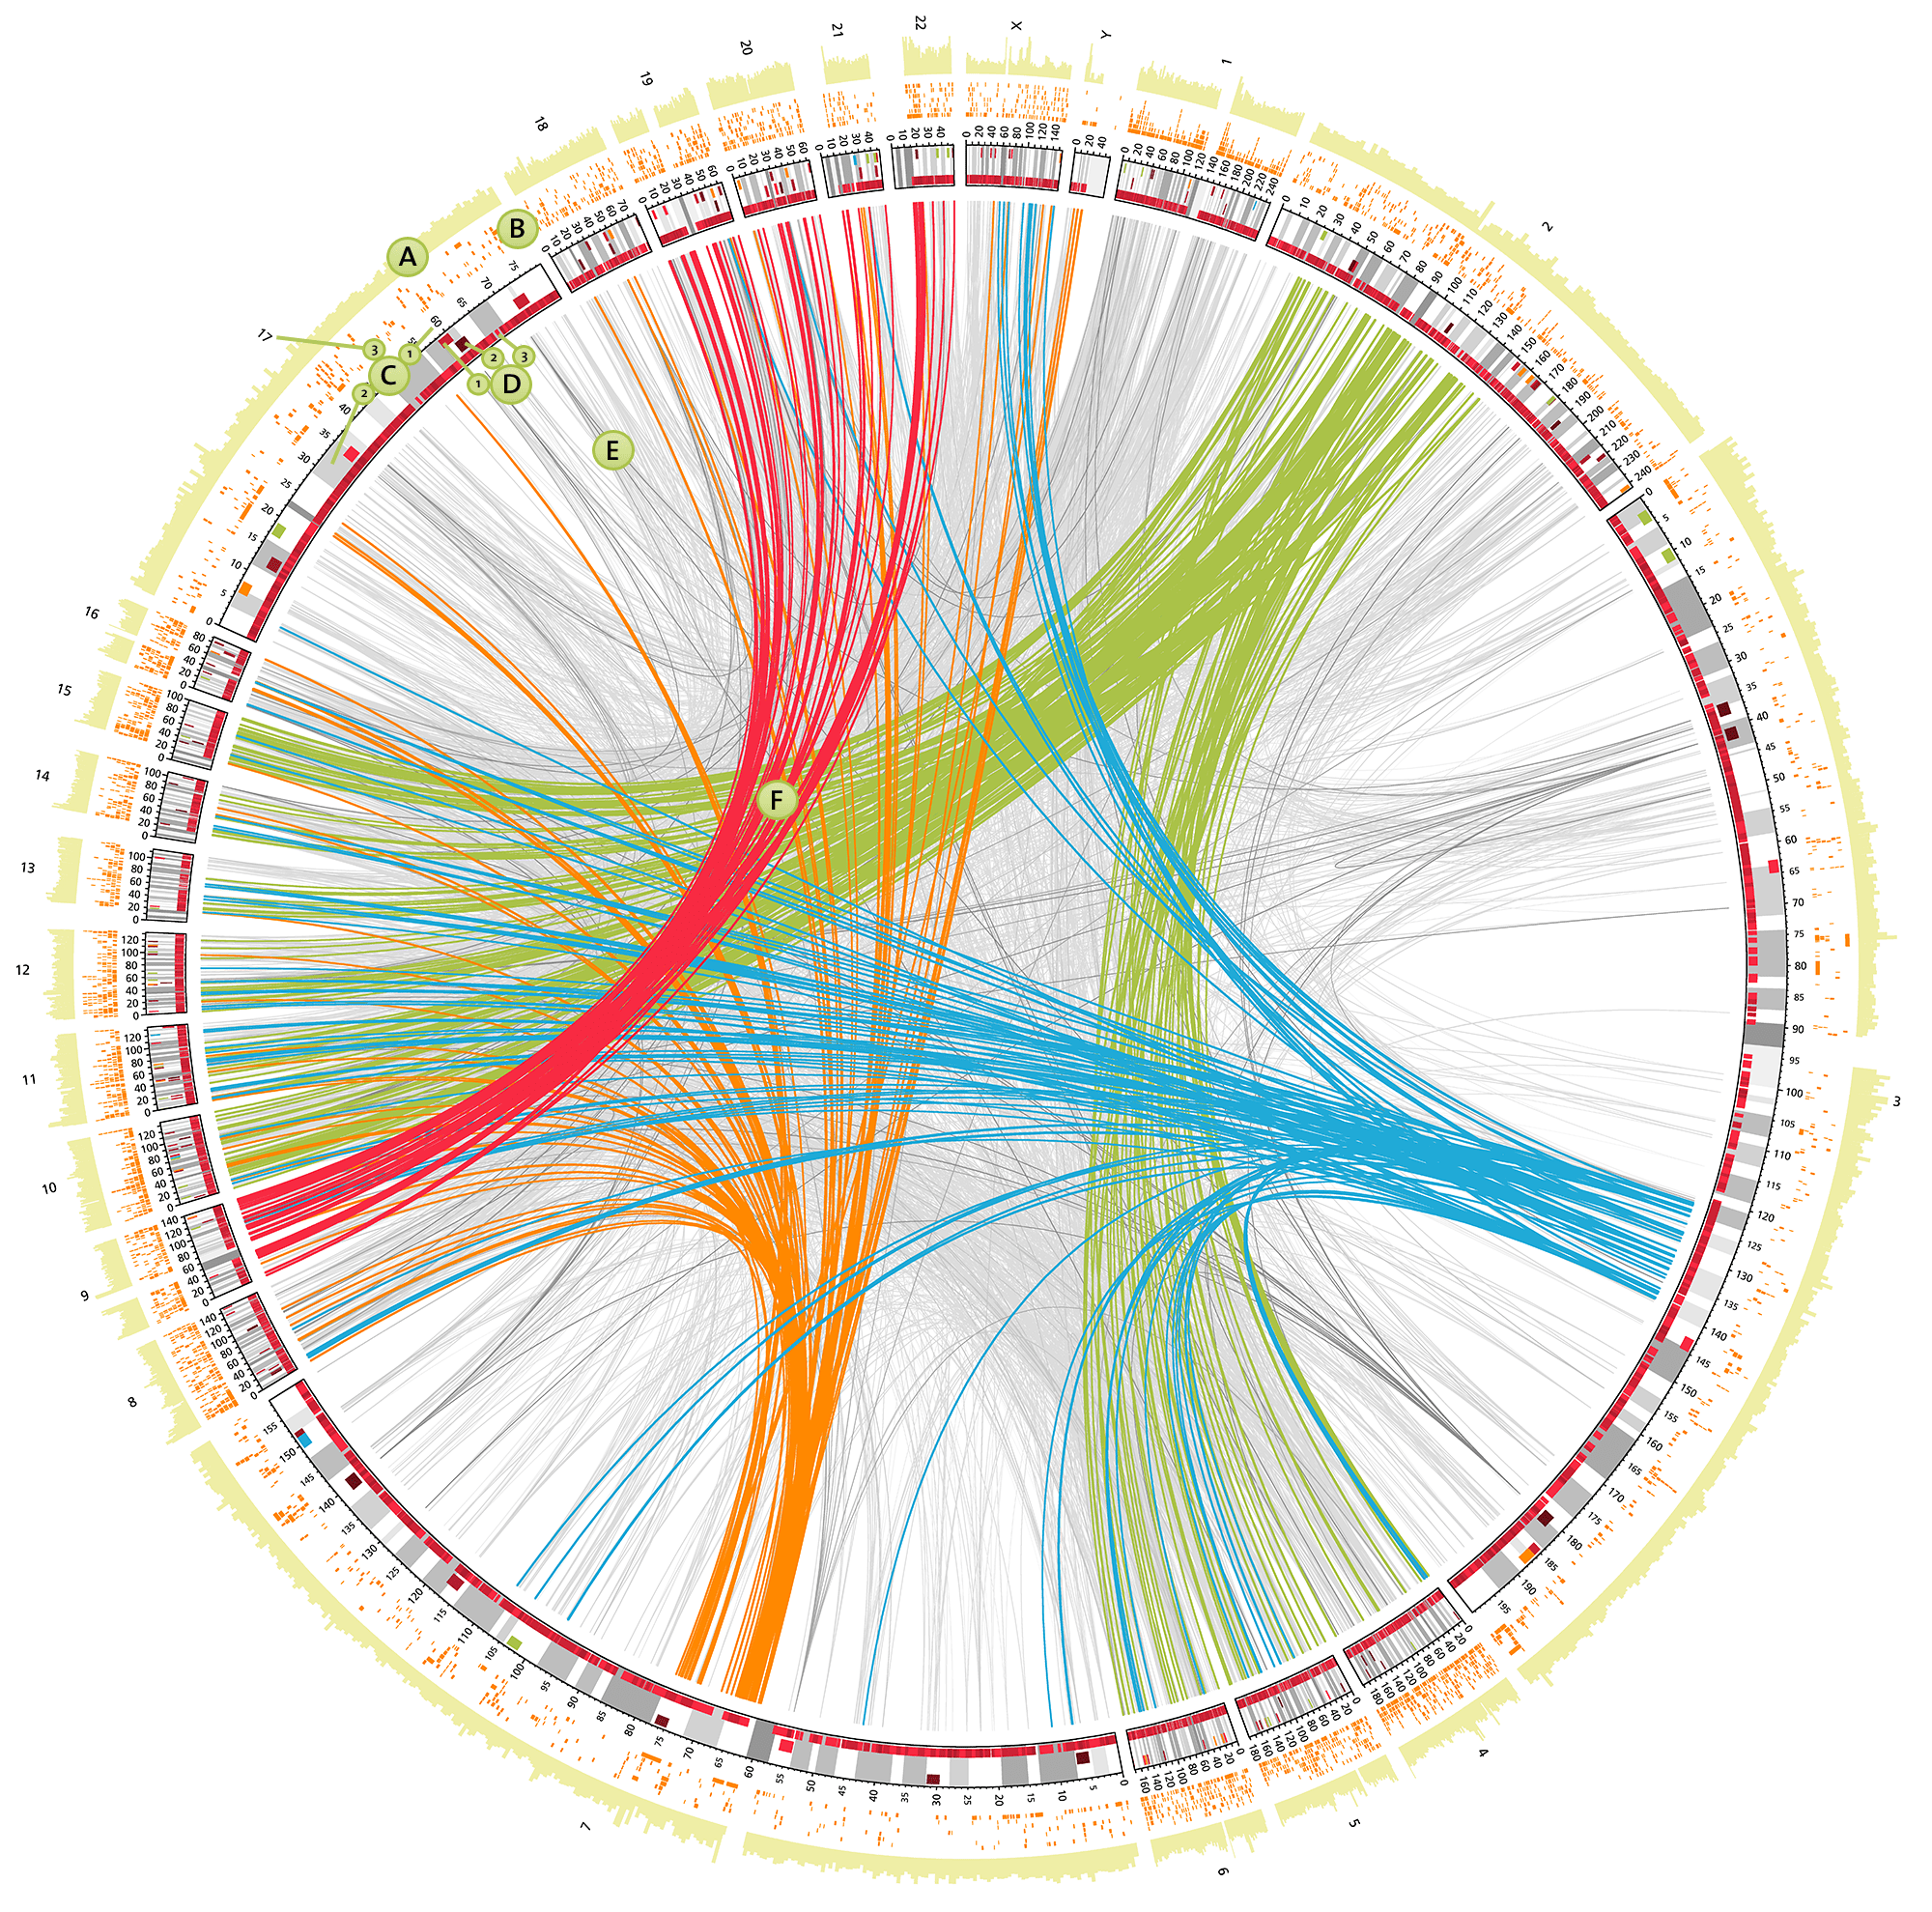 Genome Viewer Many Loci Overview